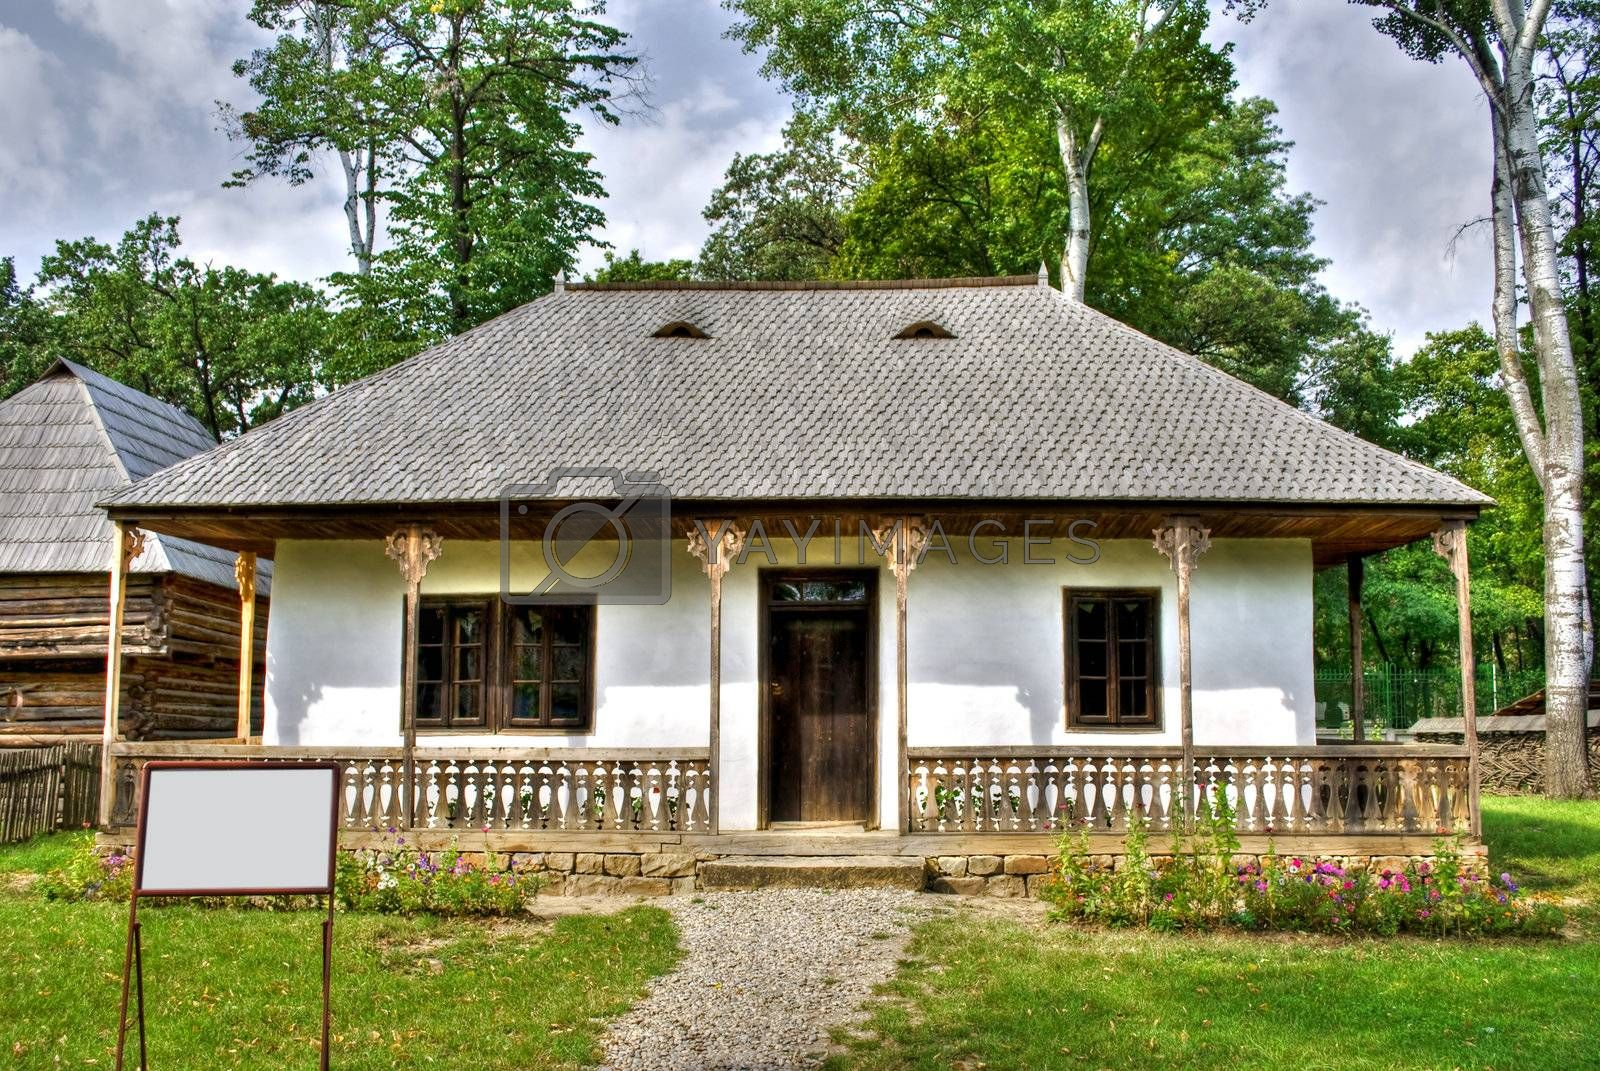 Royalty free image of wooden house by Dessie_bg